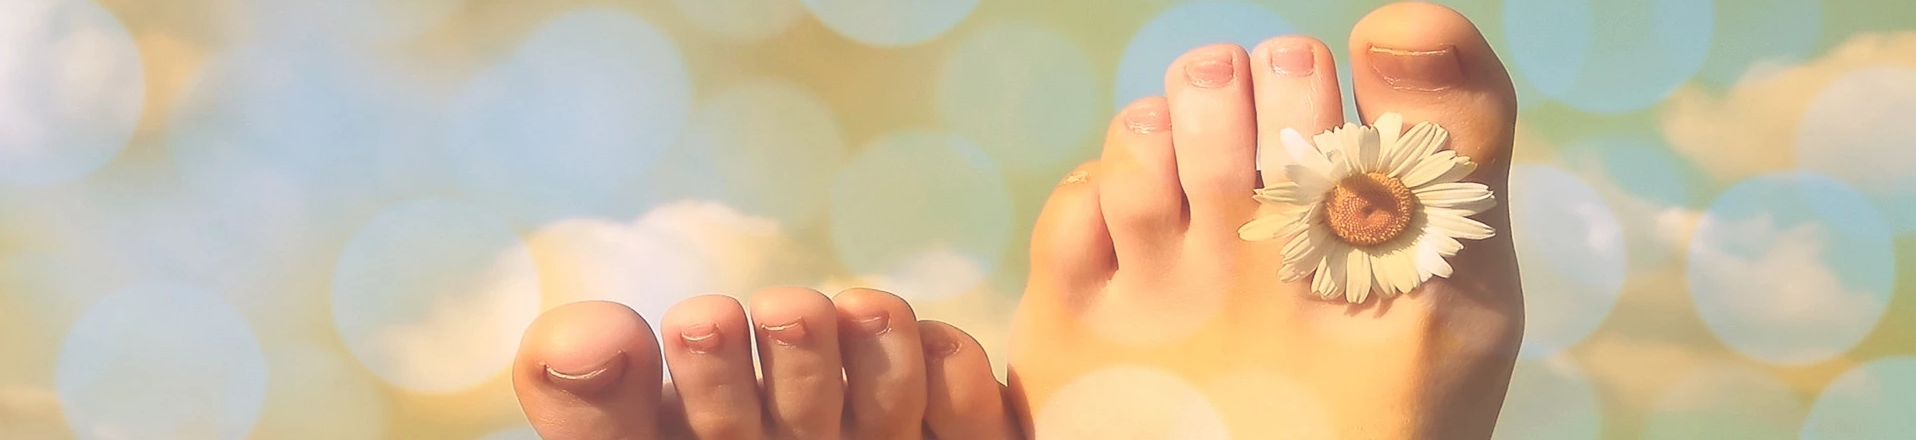 Expert Podiatry at Triad Foot and Ankle Center